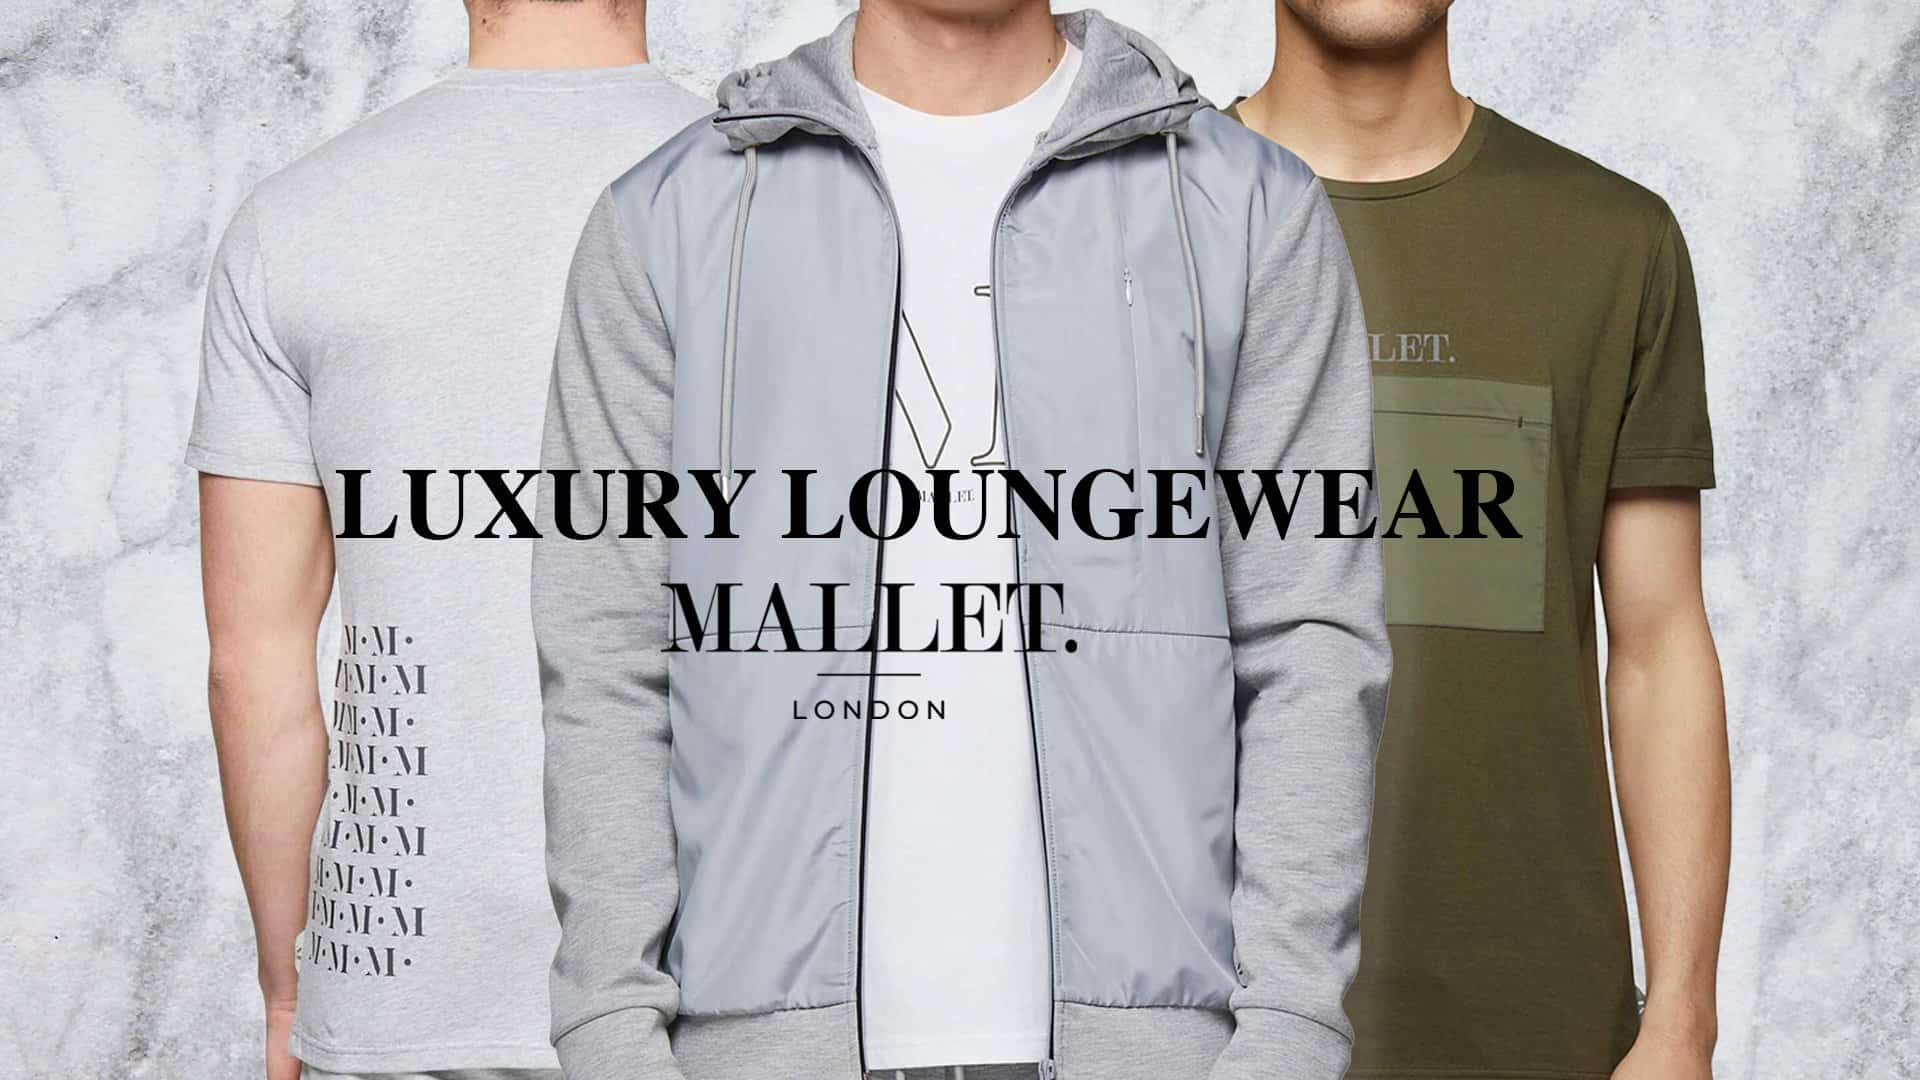 LUXURY LOUNGEWEAR MALLET